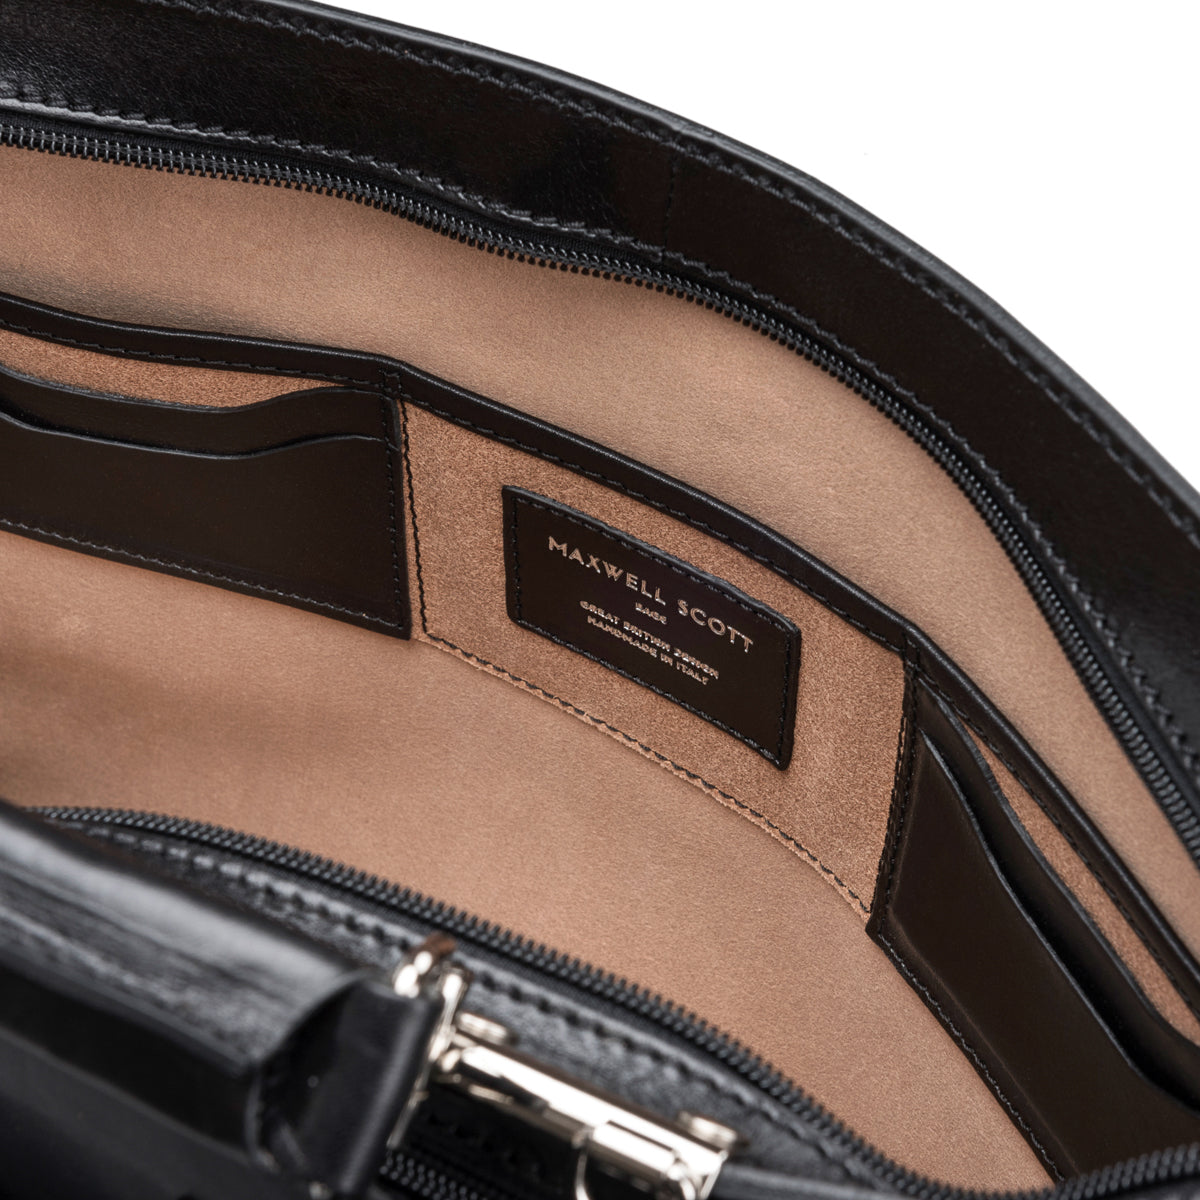 Image 6 of the Alanzo' Black Veg-Tanned Leather Briefcase